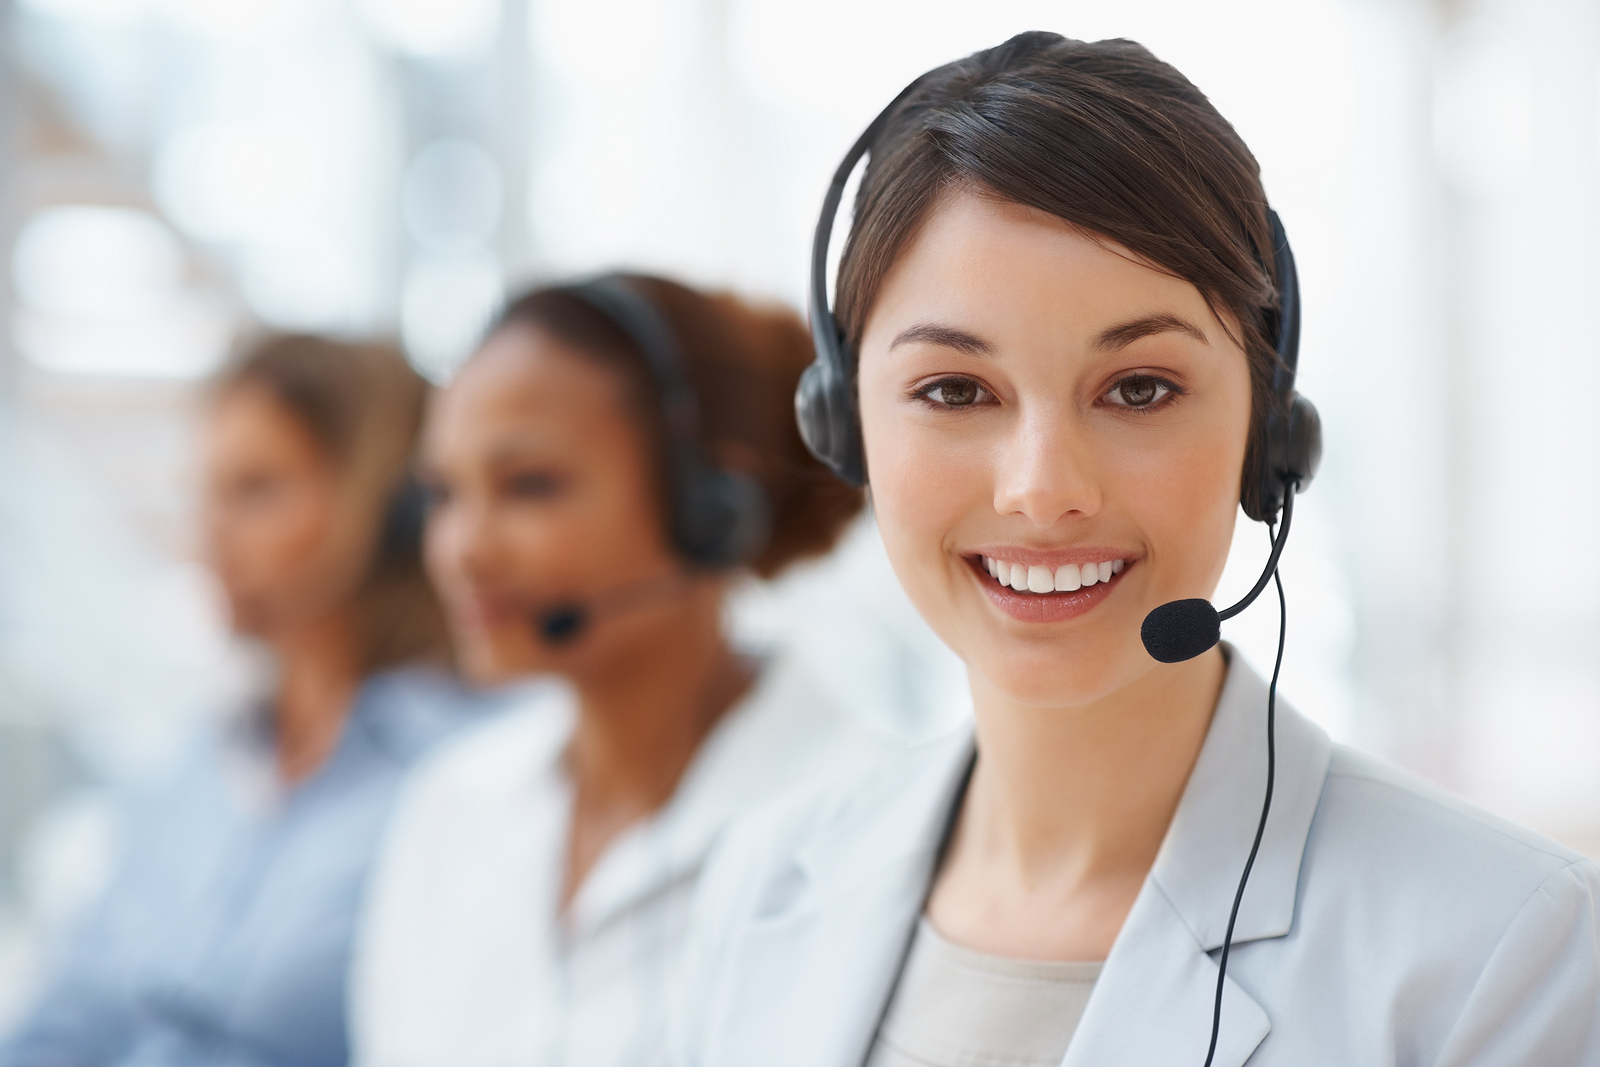 bigstock_Closeup_Of_A_Call_Center_Emplo_7014545